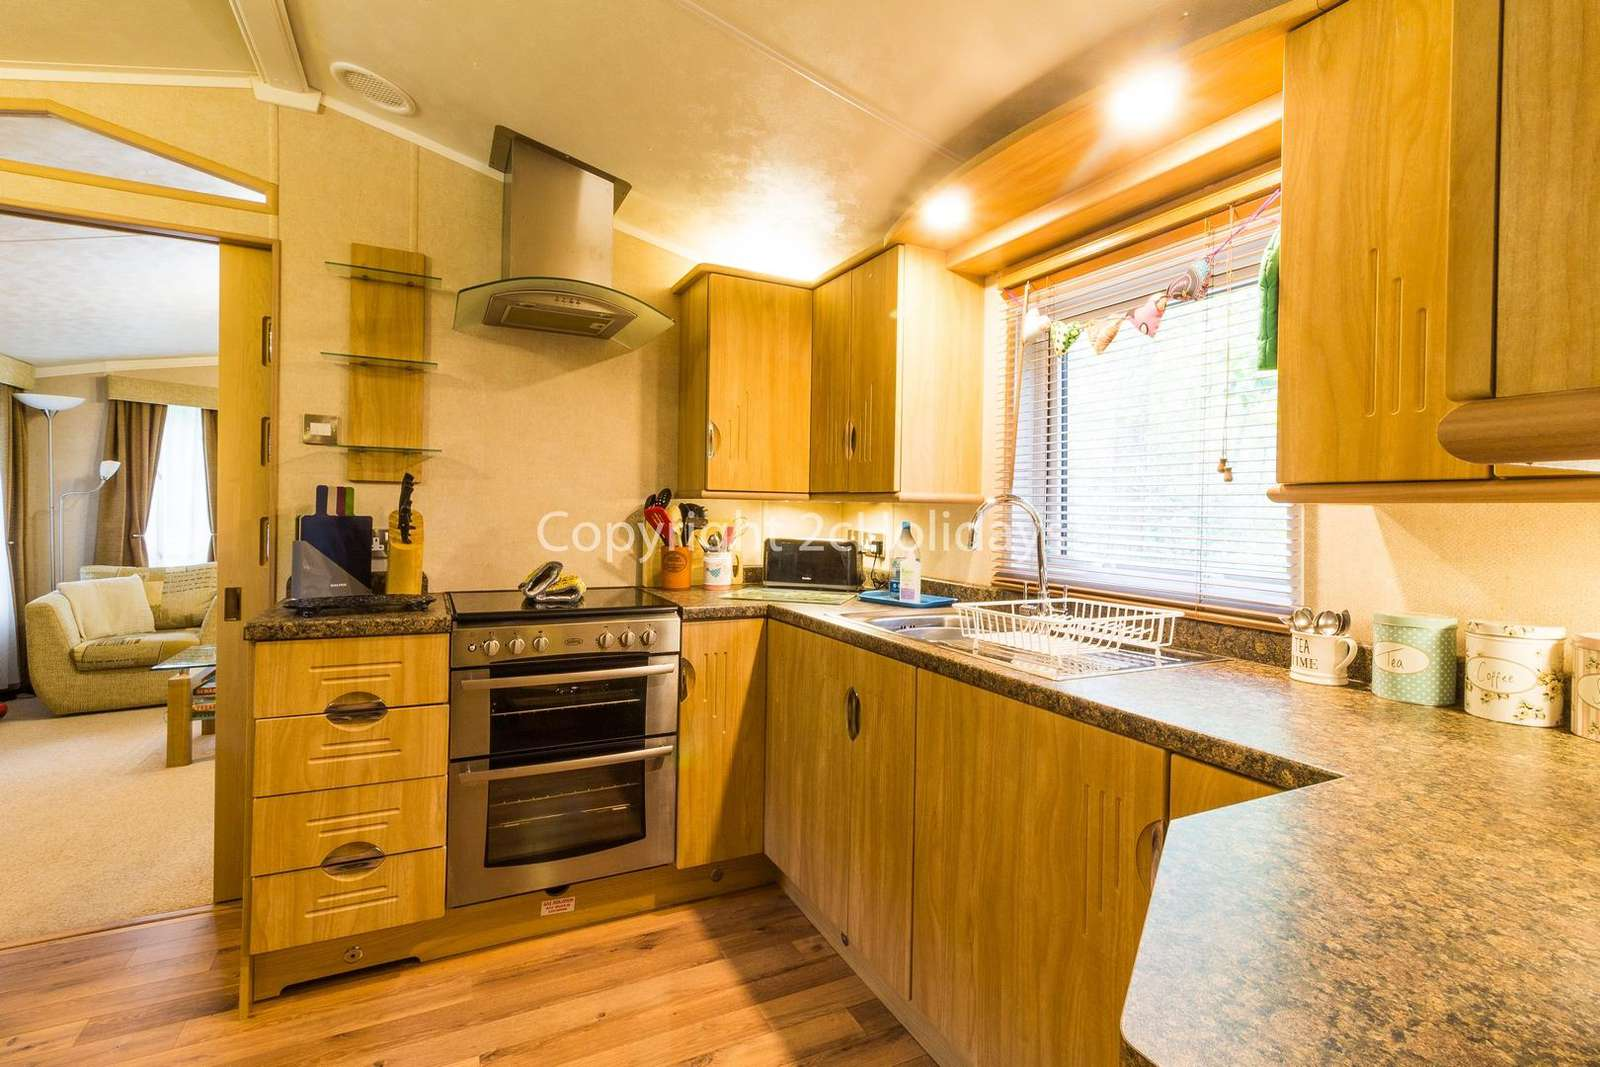 A spacious fully equipped kitchen, perfect for self-catering holidays!